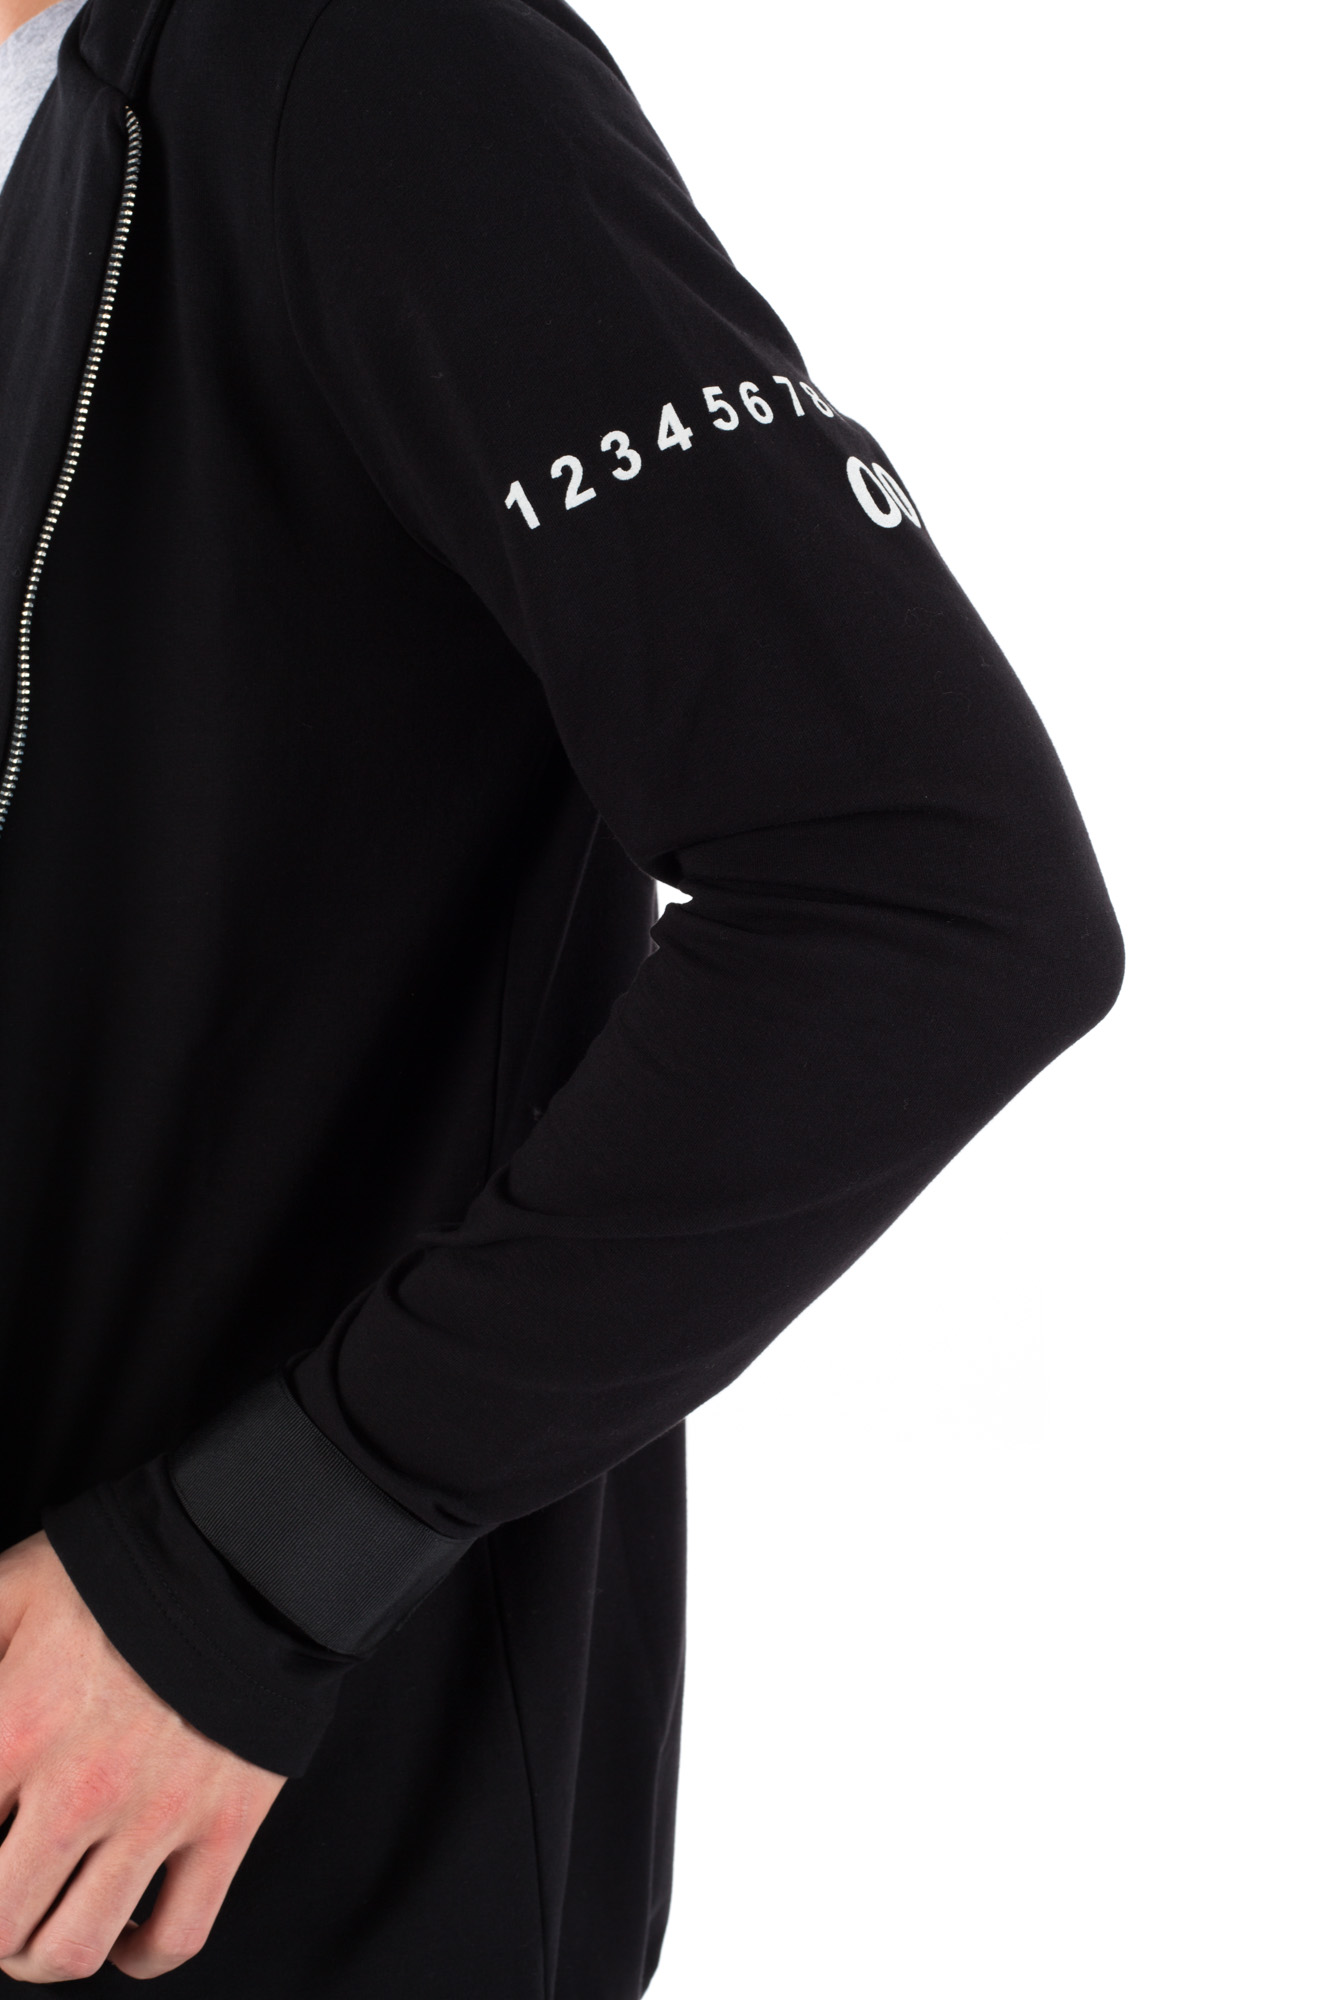 Numero 00 - Zipped sweatshirt with sleeve logo